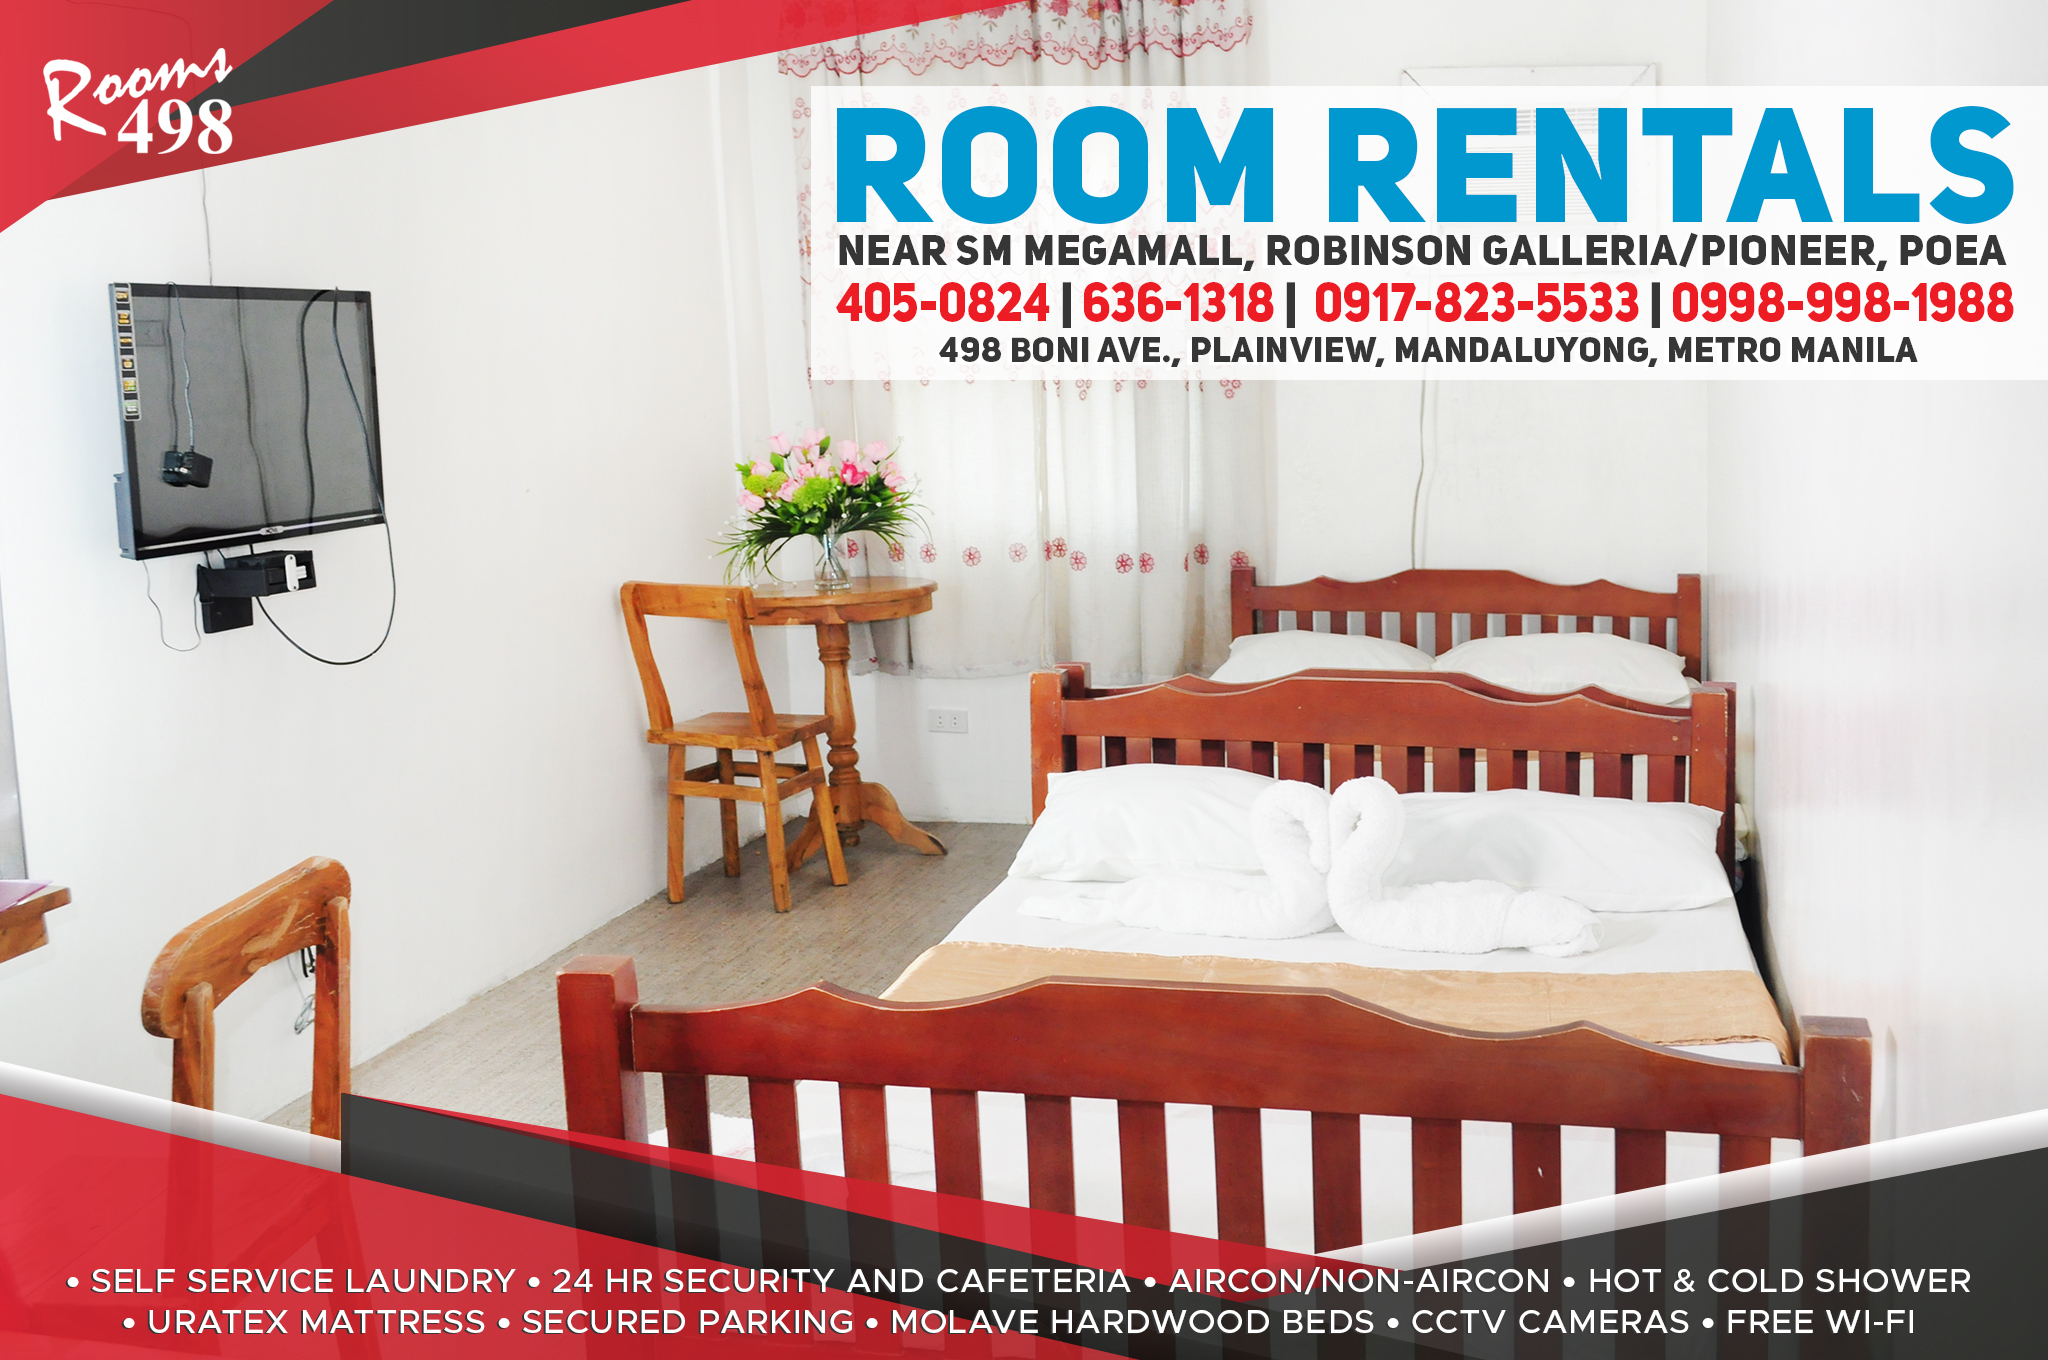 Bedspace. Apartment, Apartelle, Room Rentals, Daily and Monthly, Accomodation,Accessible place in the Metro, Room for rent. 24/7 security with own cafetria and self-service laundry.